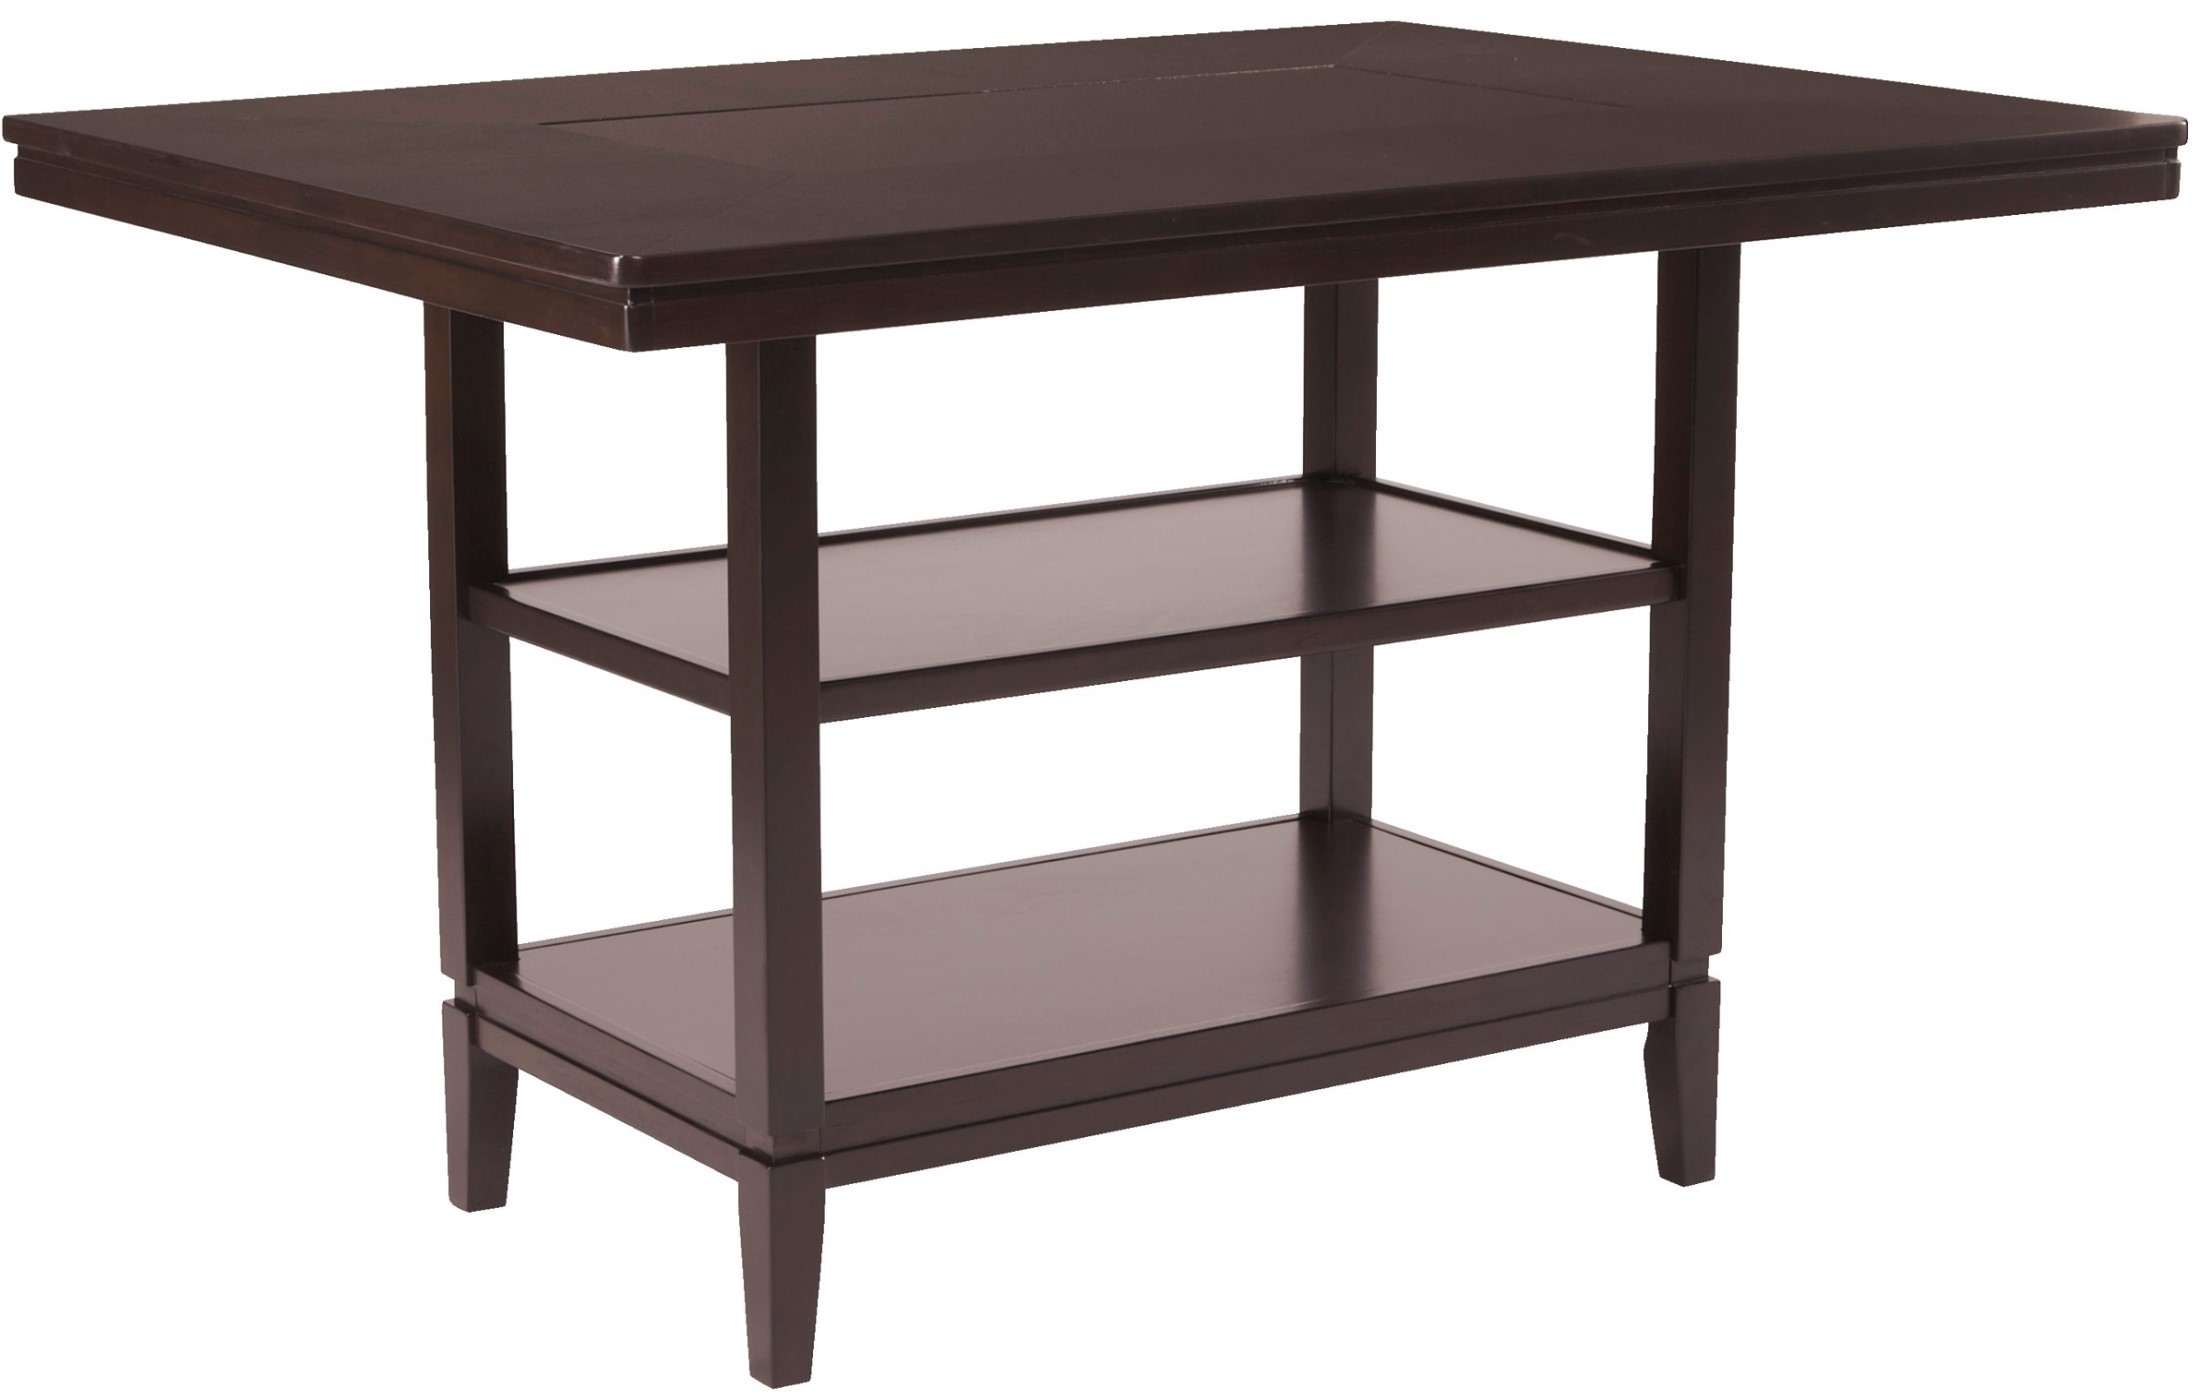 trishelle rectangular dining room counter table from ashley d550 32